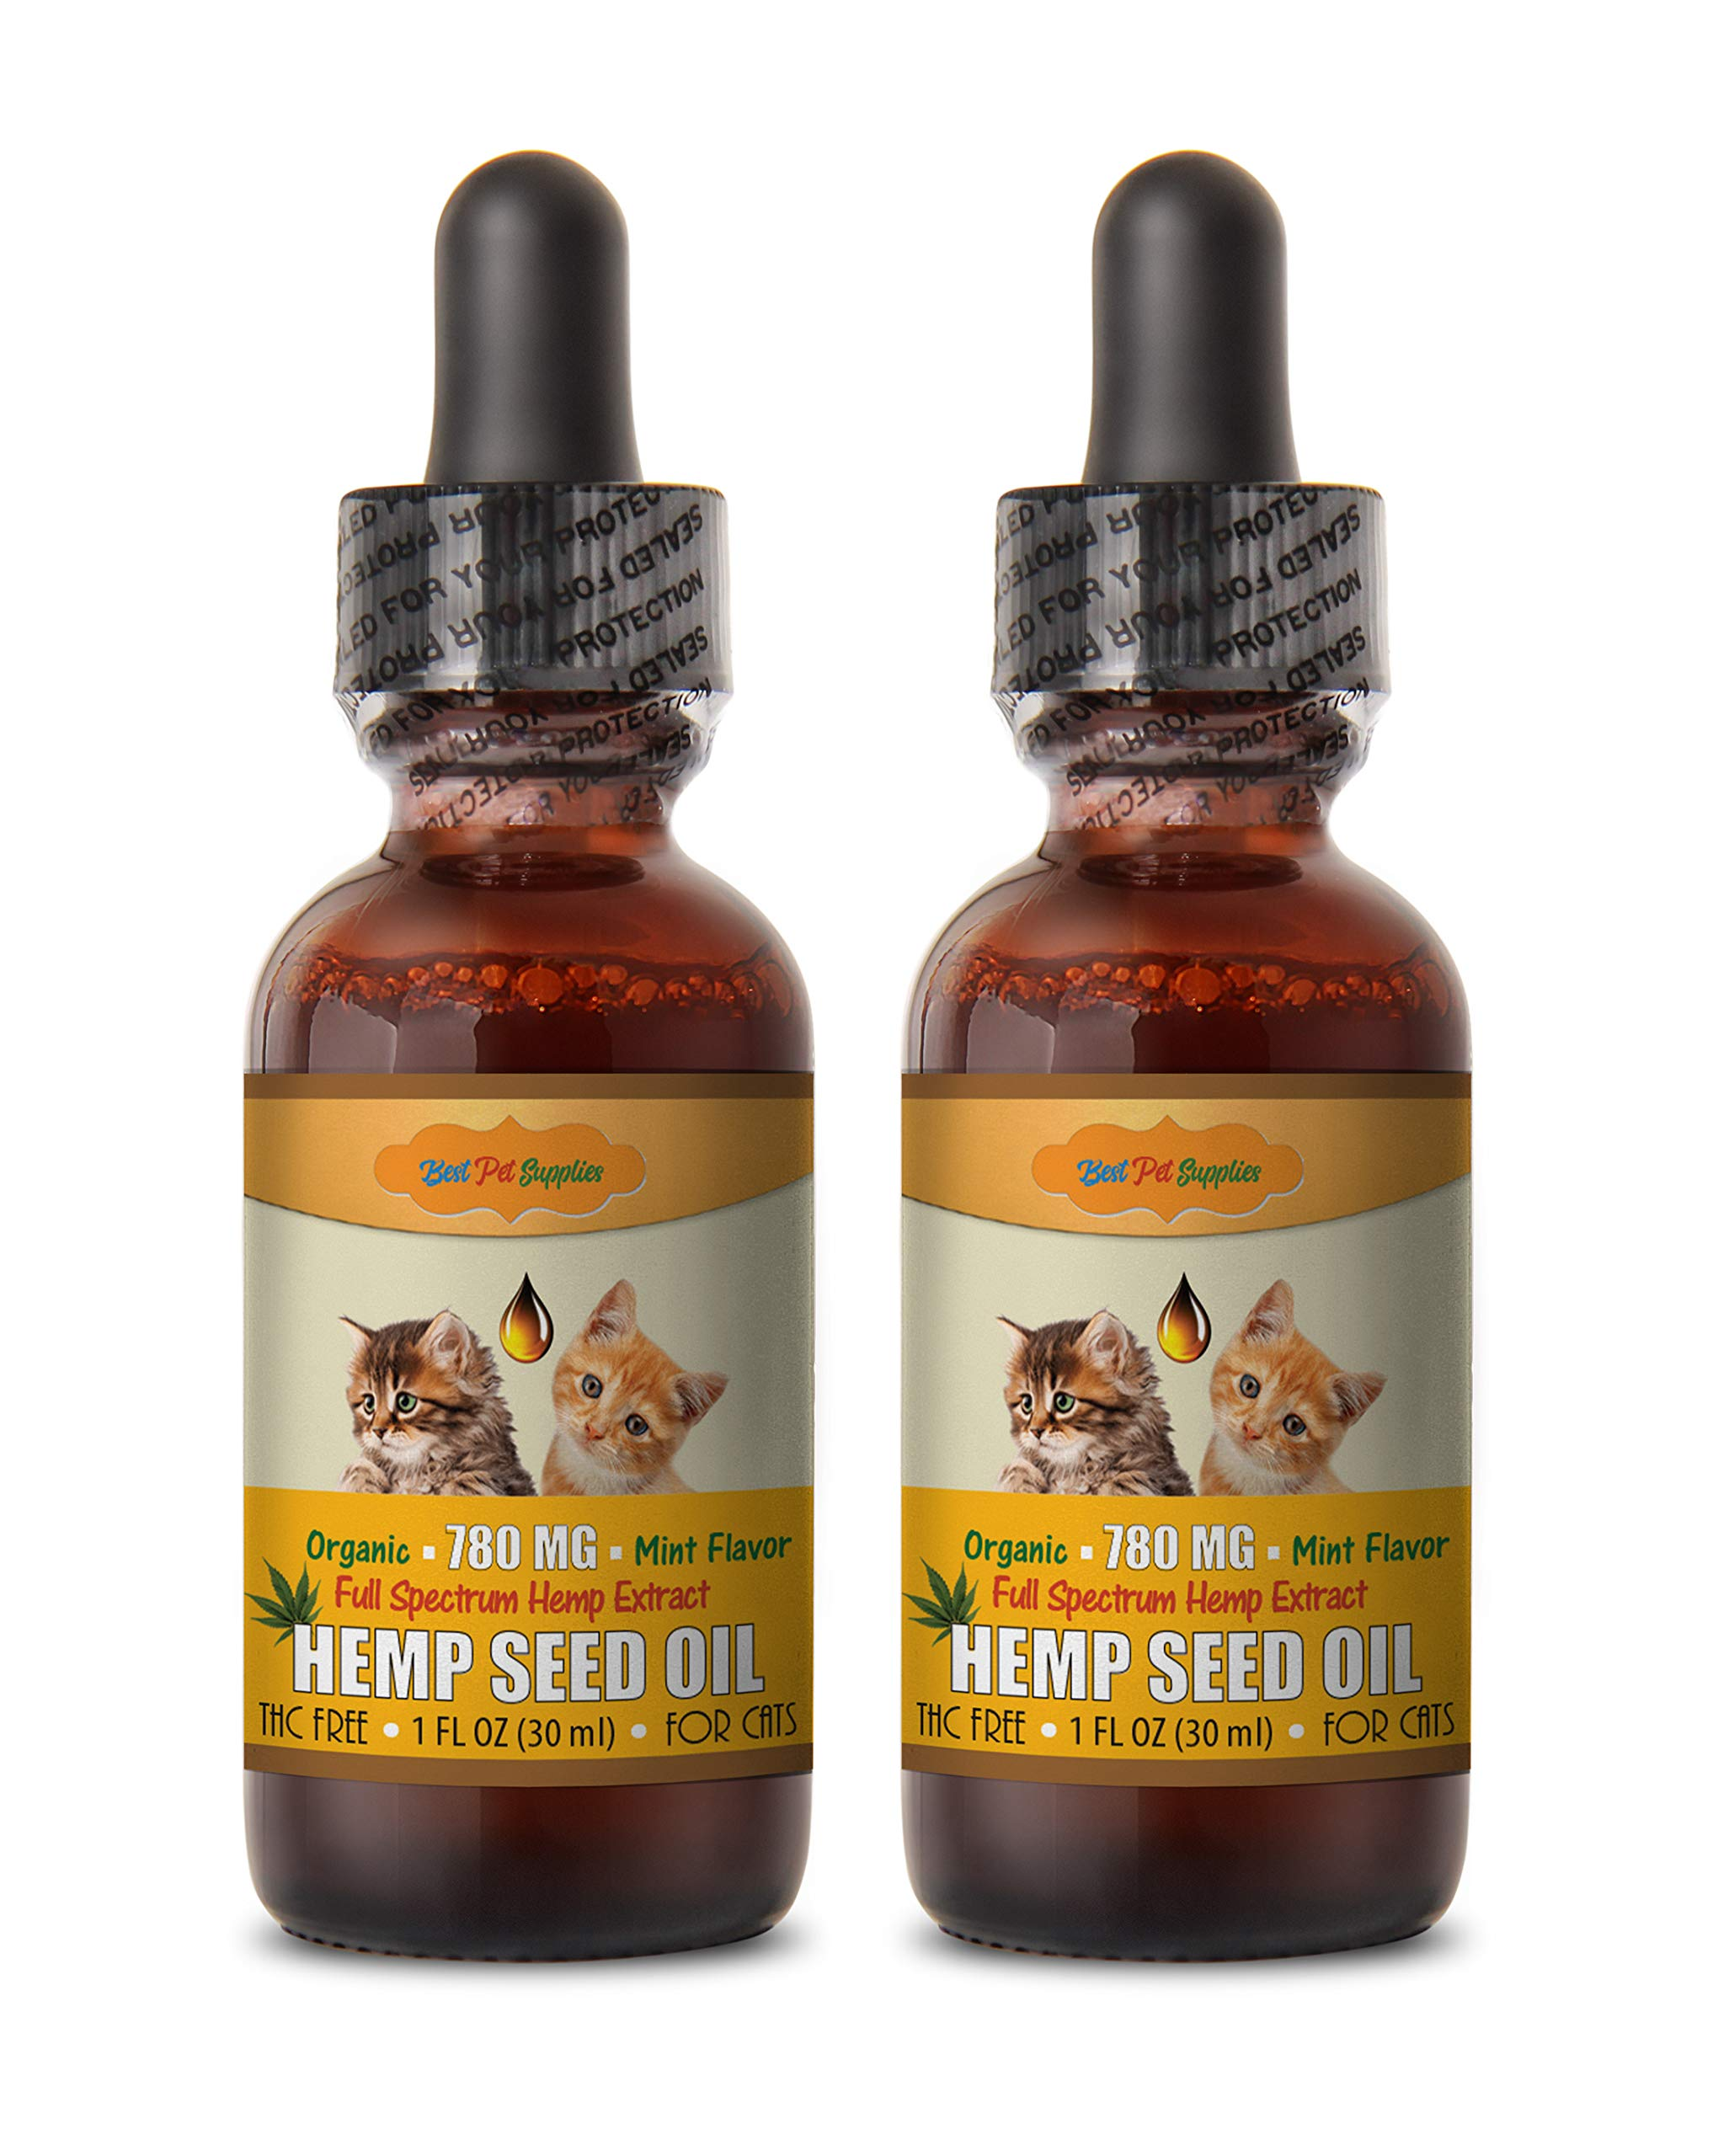 Omega Fatty acids for Cats - CAT Hemp Seed Oil Extract 780MG Drops - with Omega - Natural - Best Anxiety and Pain Relief - cat Vitamins Omega 3-2 Bottles (60 ML) by BEST PET SUPPLIES LLC